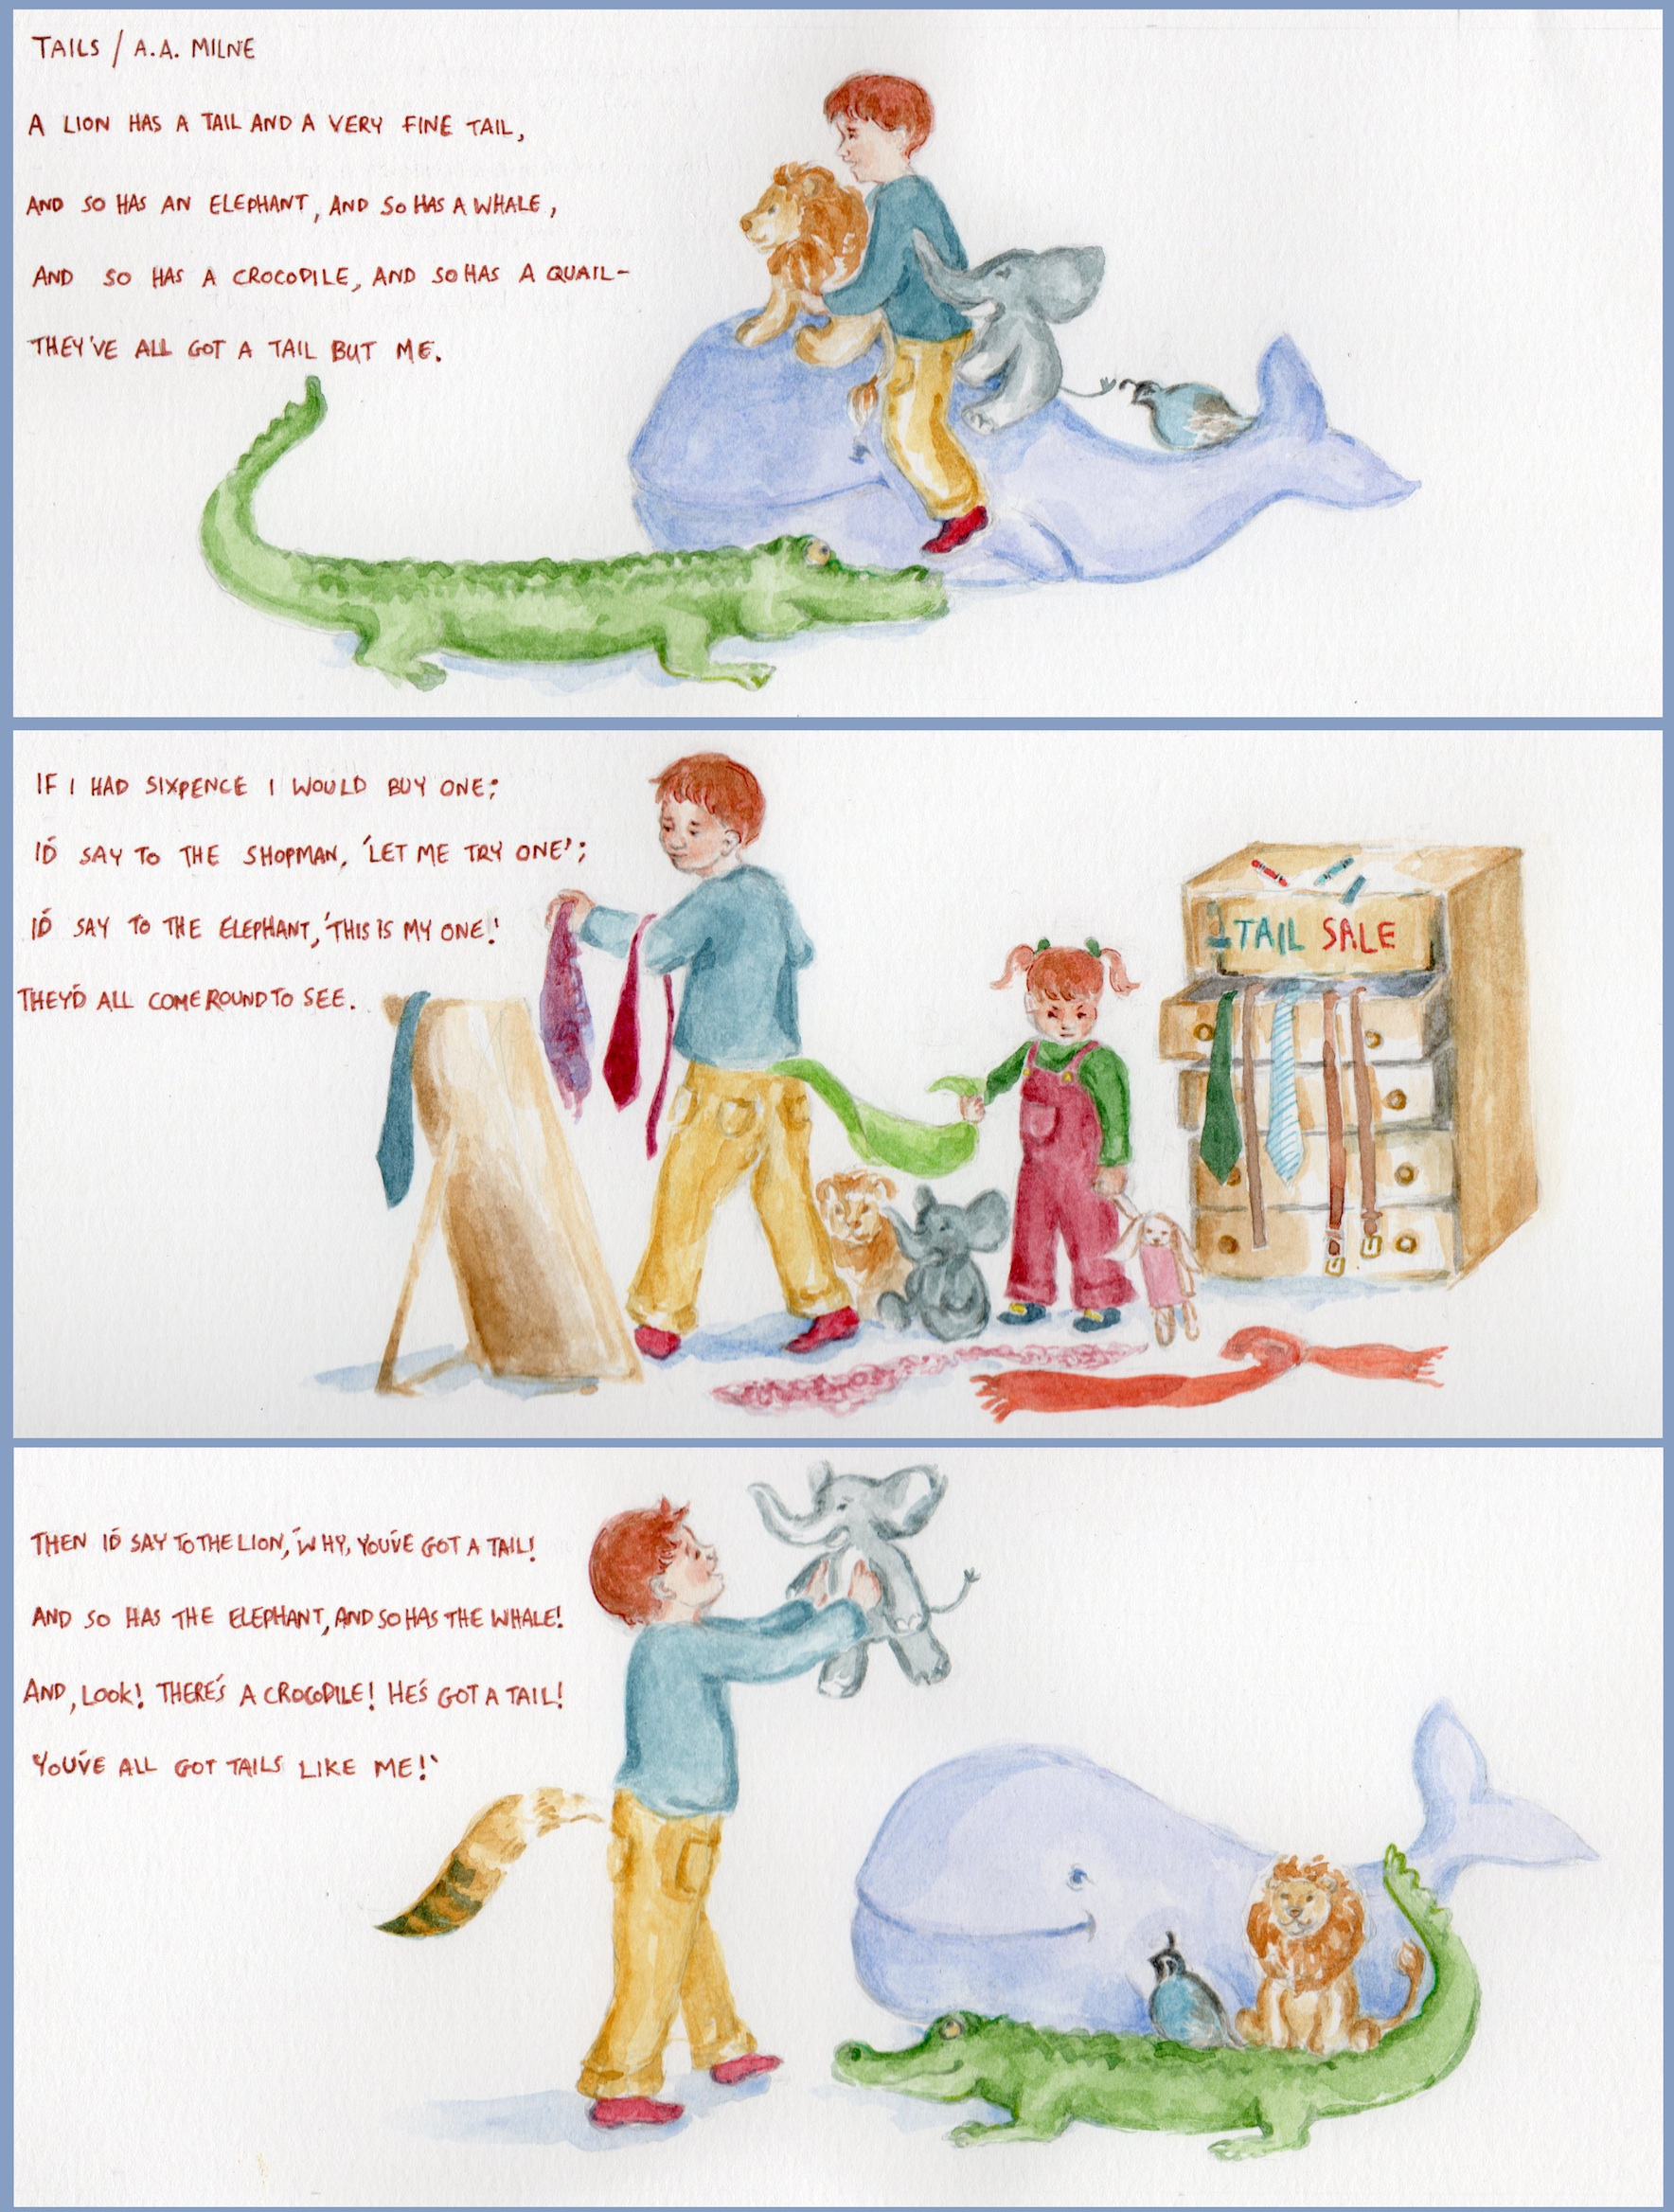 The poem: 'Tails' by A. A. Milne, illustrated by Ella Lapointe.